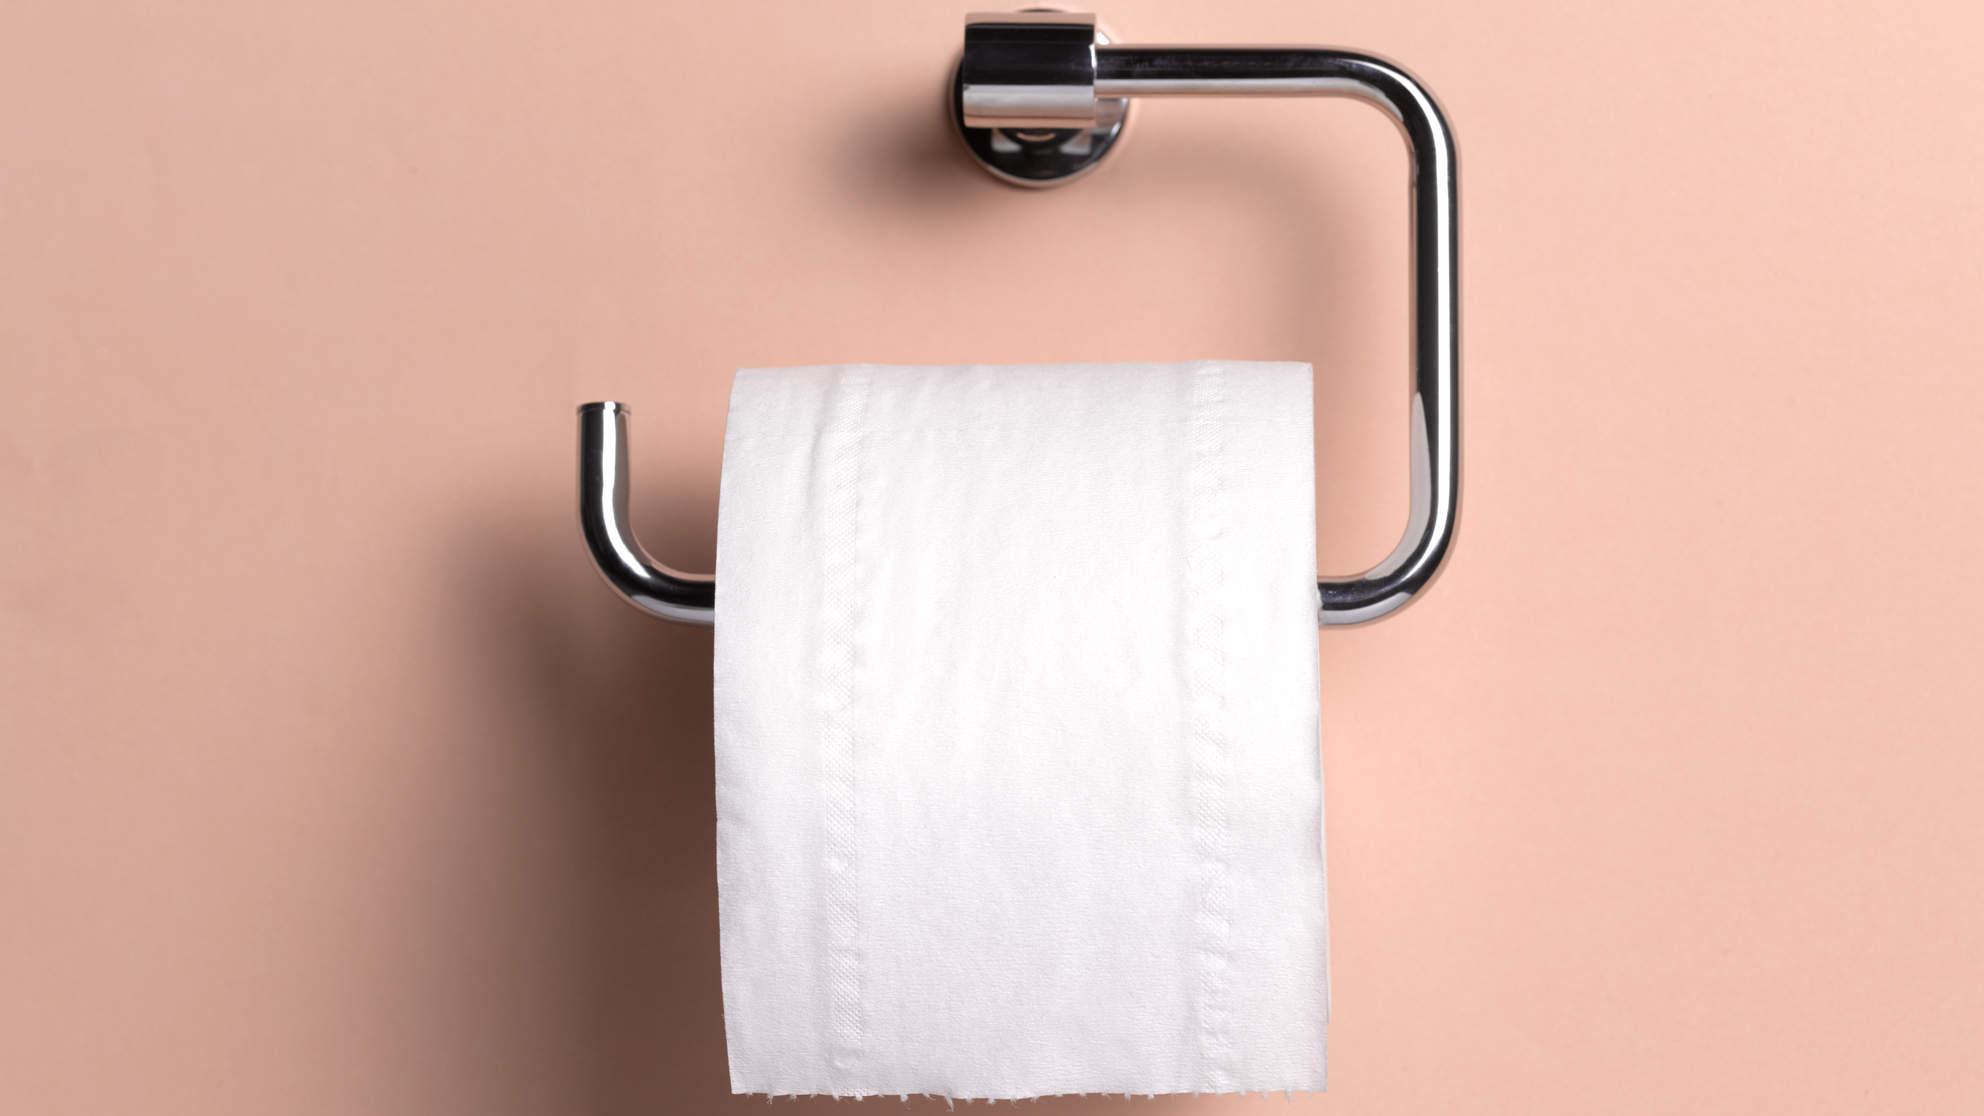 Is Your Poop Healthy? The Bristol Stool Chart Shows What It Should Look Like